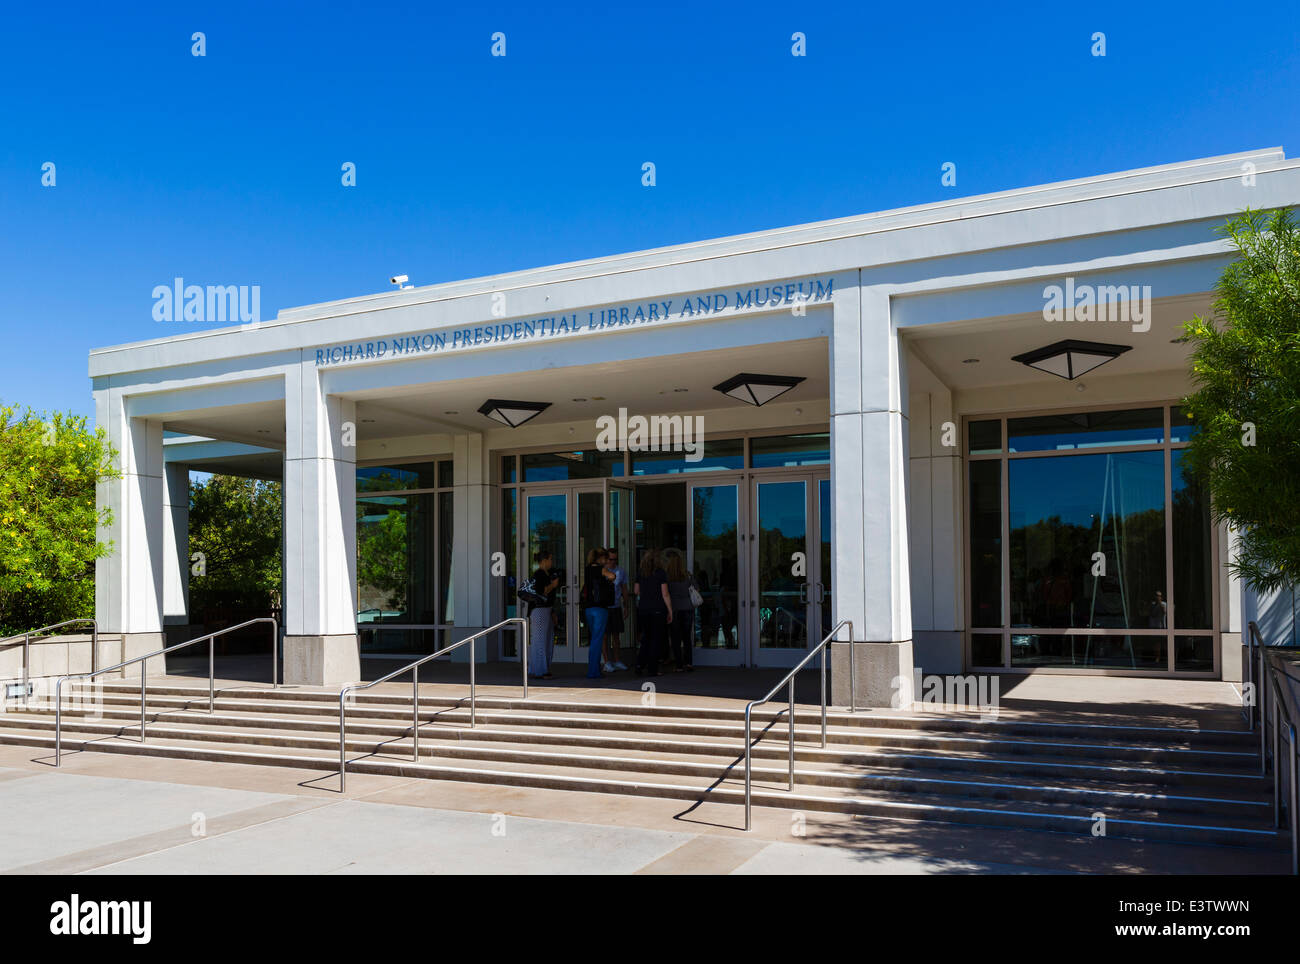 Die Richard Nixon Presidential Library and Museum, Yorba Linda, Orange County, in der Nähe von Los Angeles, Stockbild